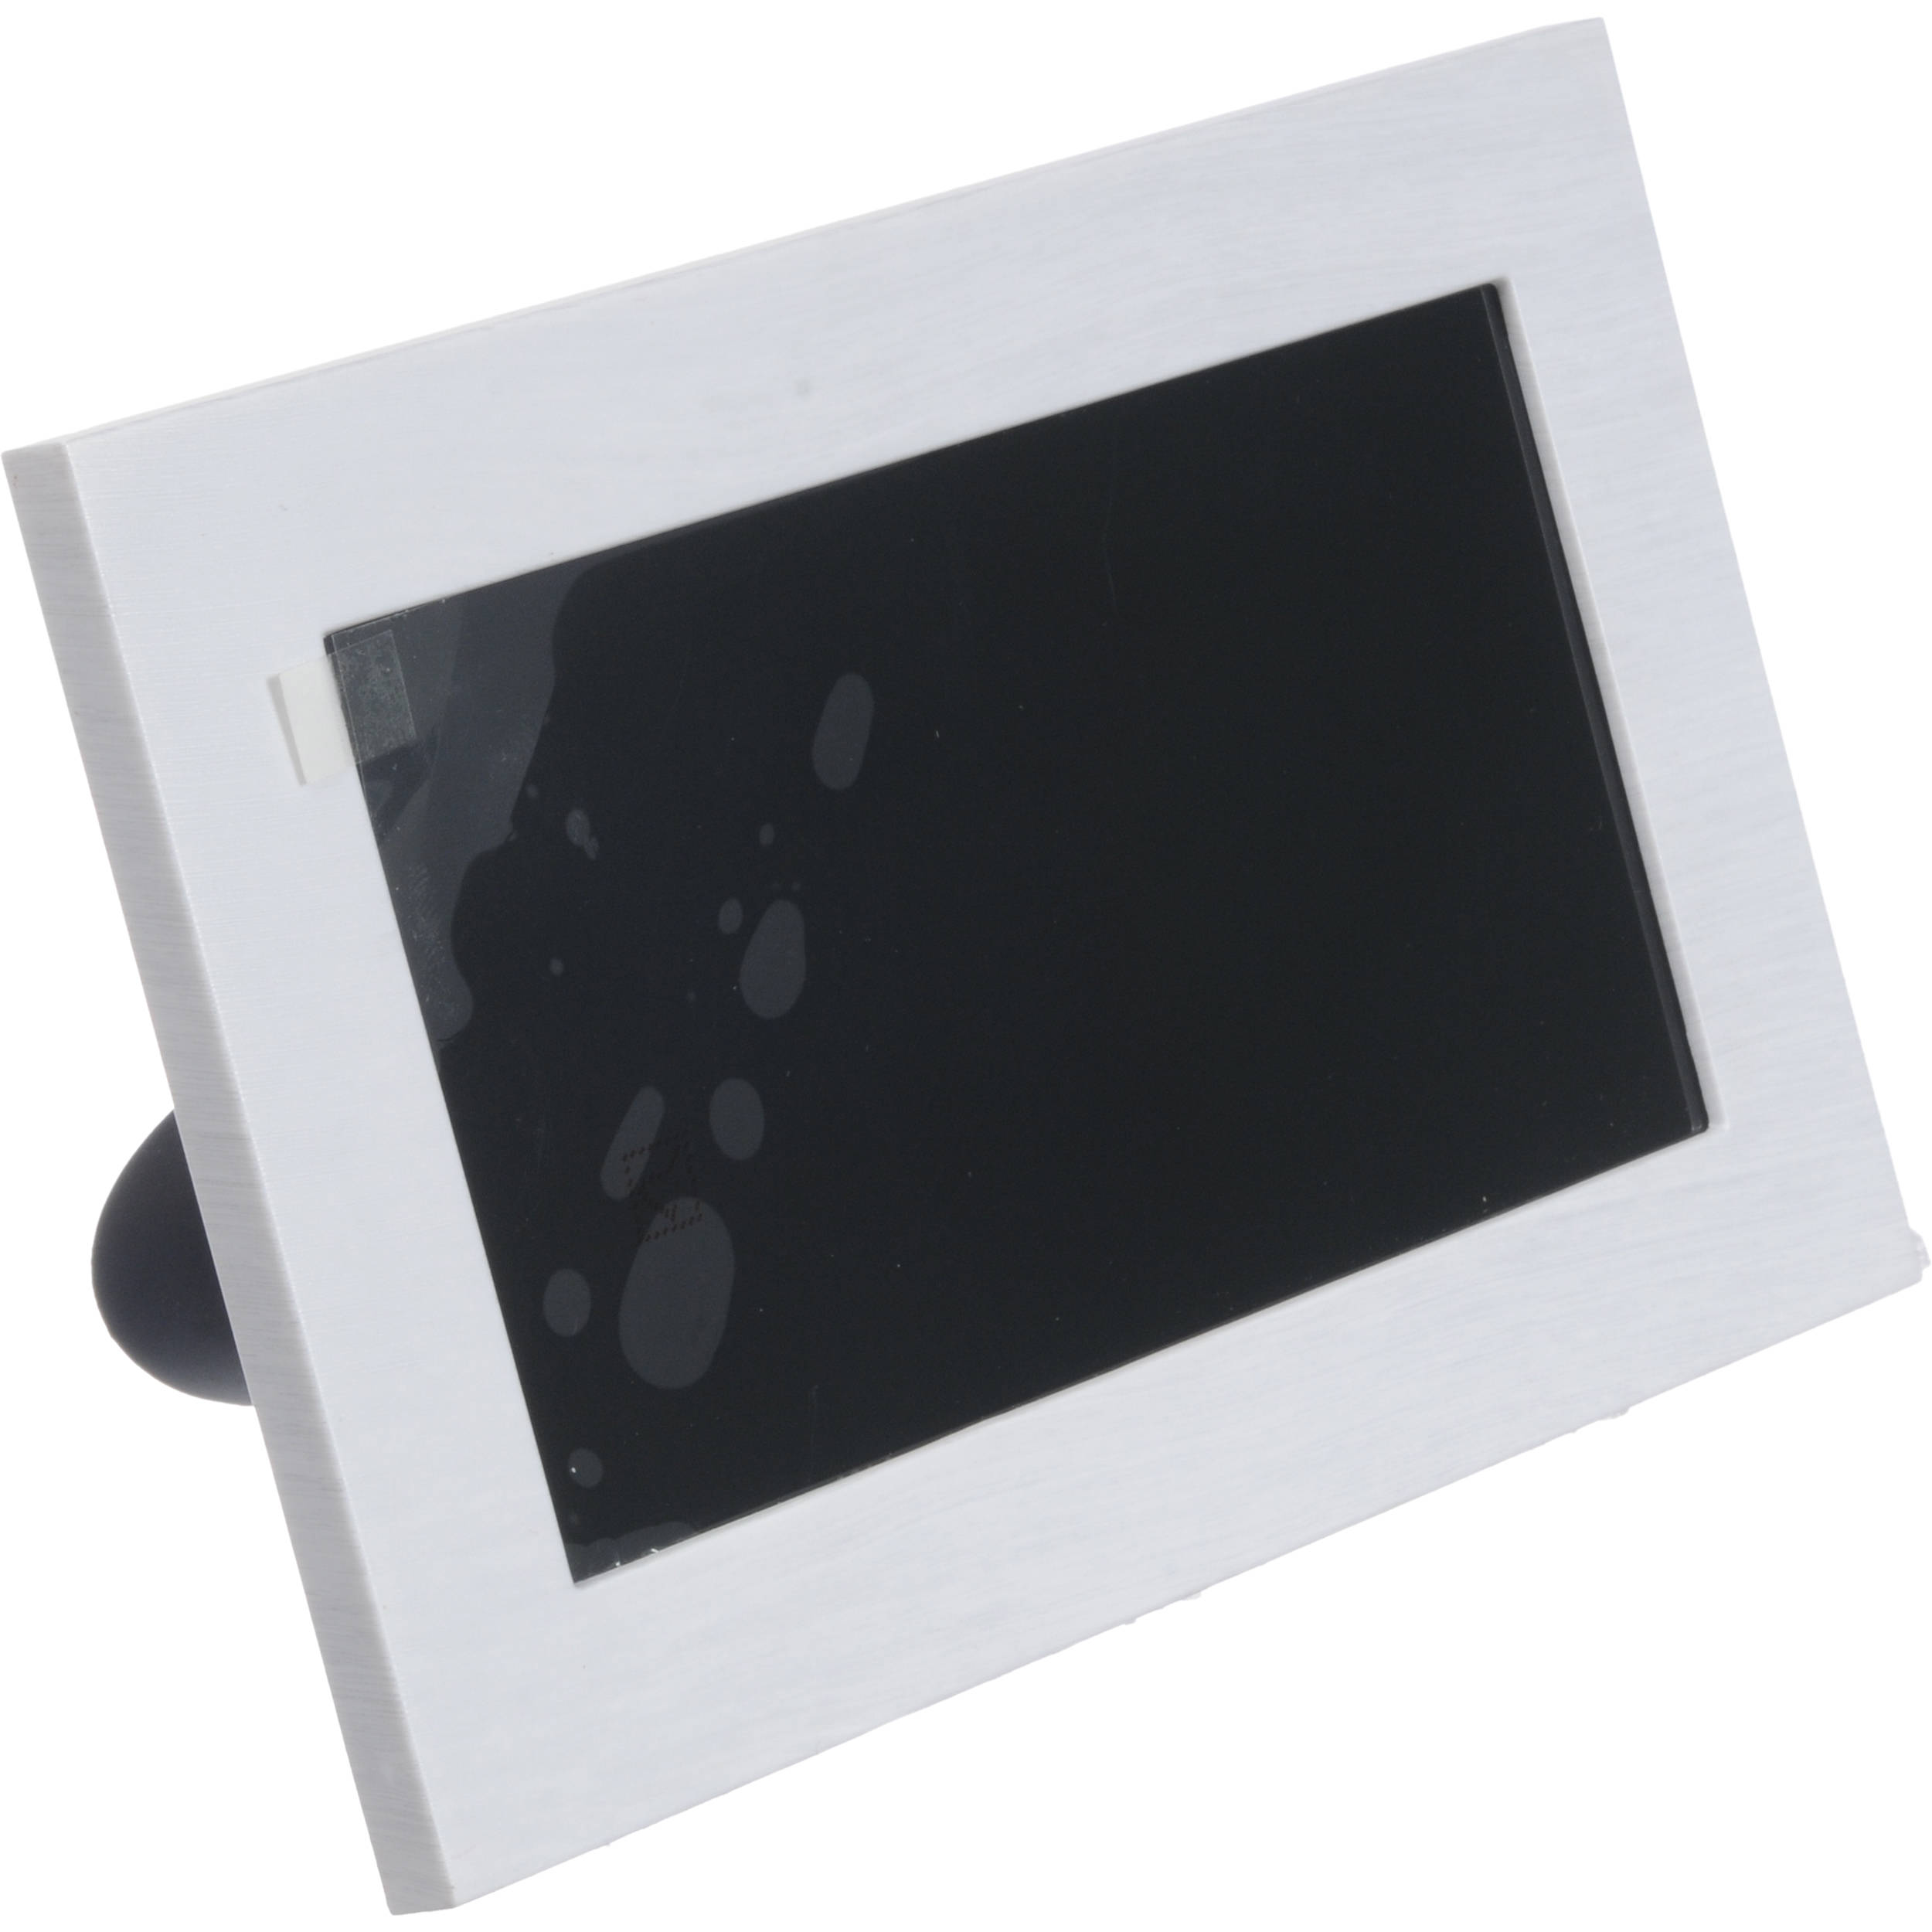 Coby Dp700 7 Widescreen Digital Photo Frame Dp700wht Bh